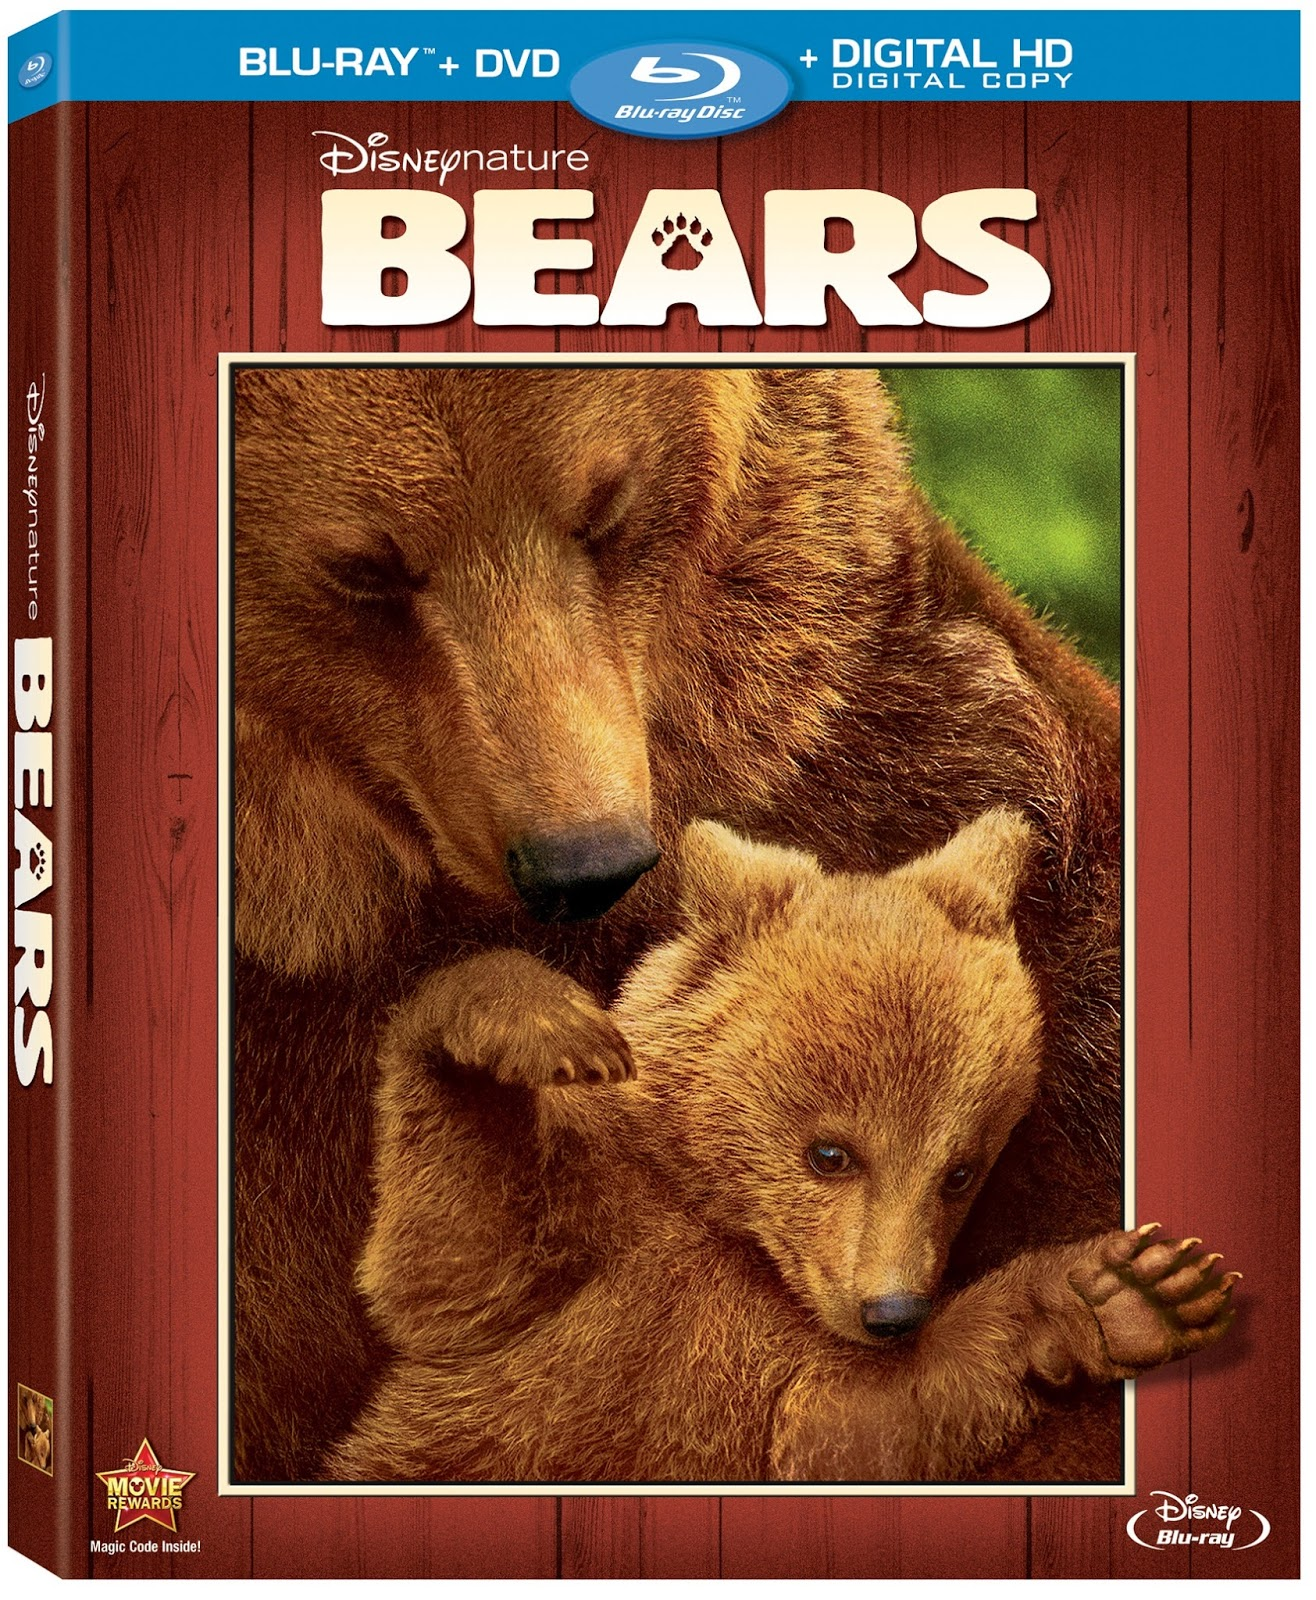 Disneynature Bears Movie